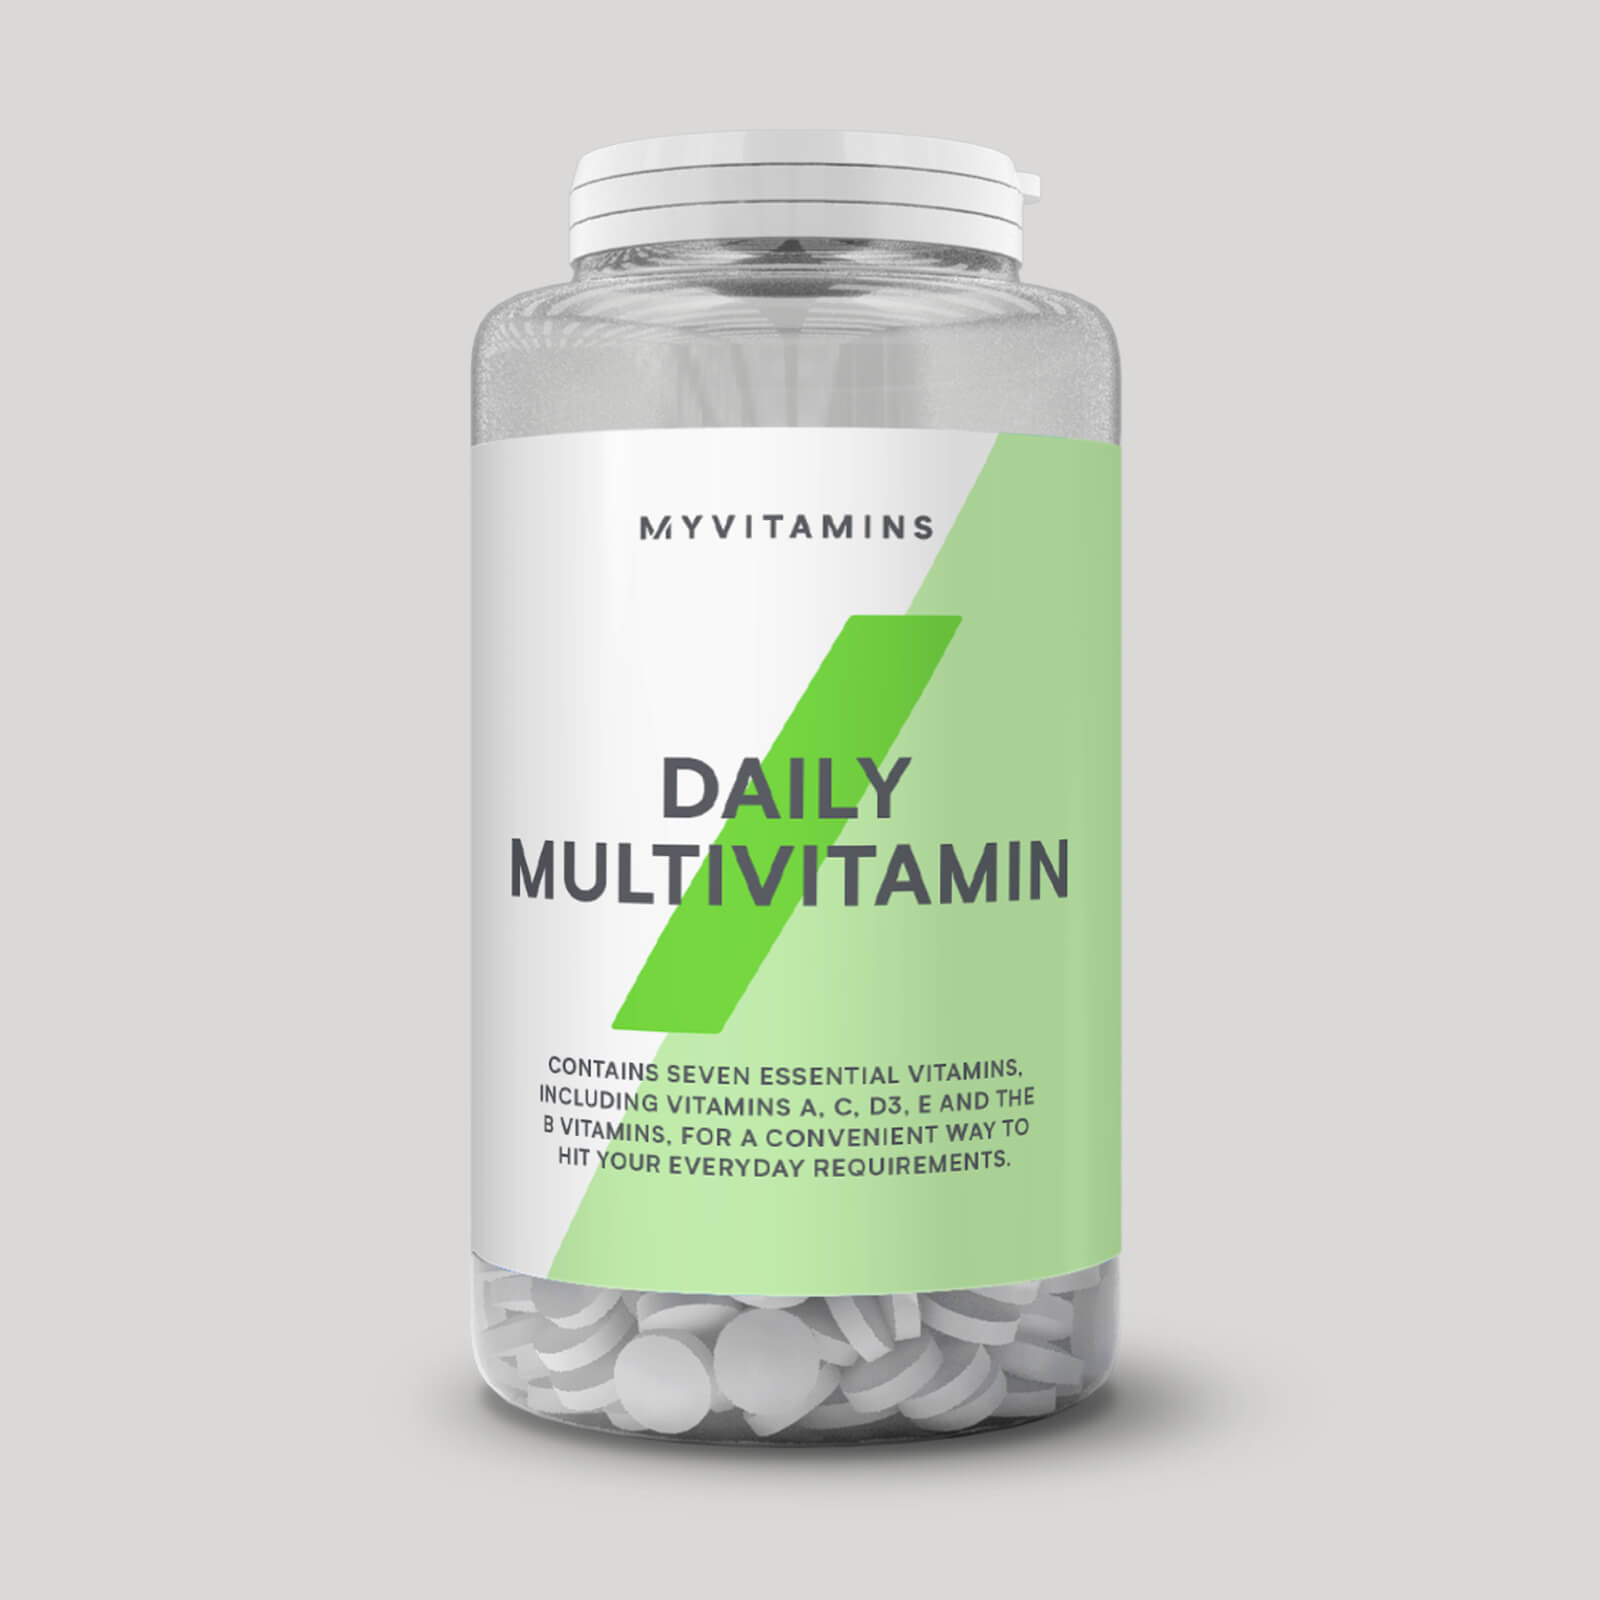 Daily Multivitamins